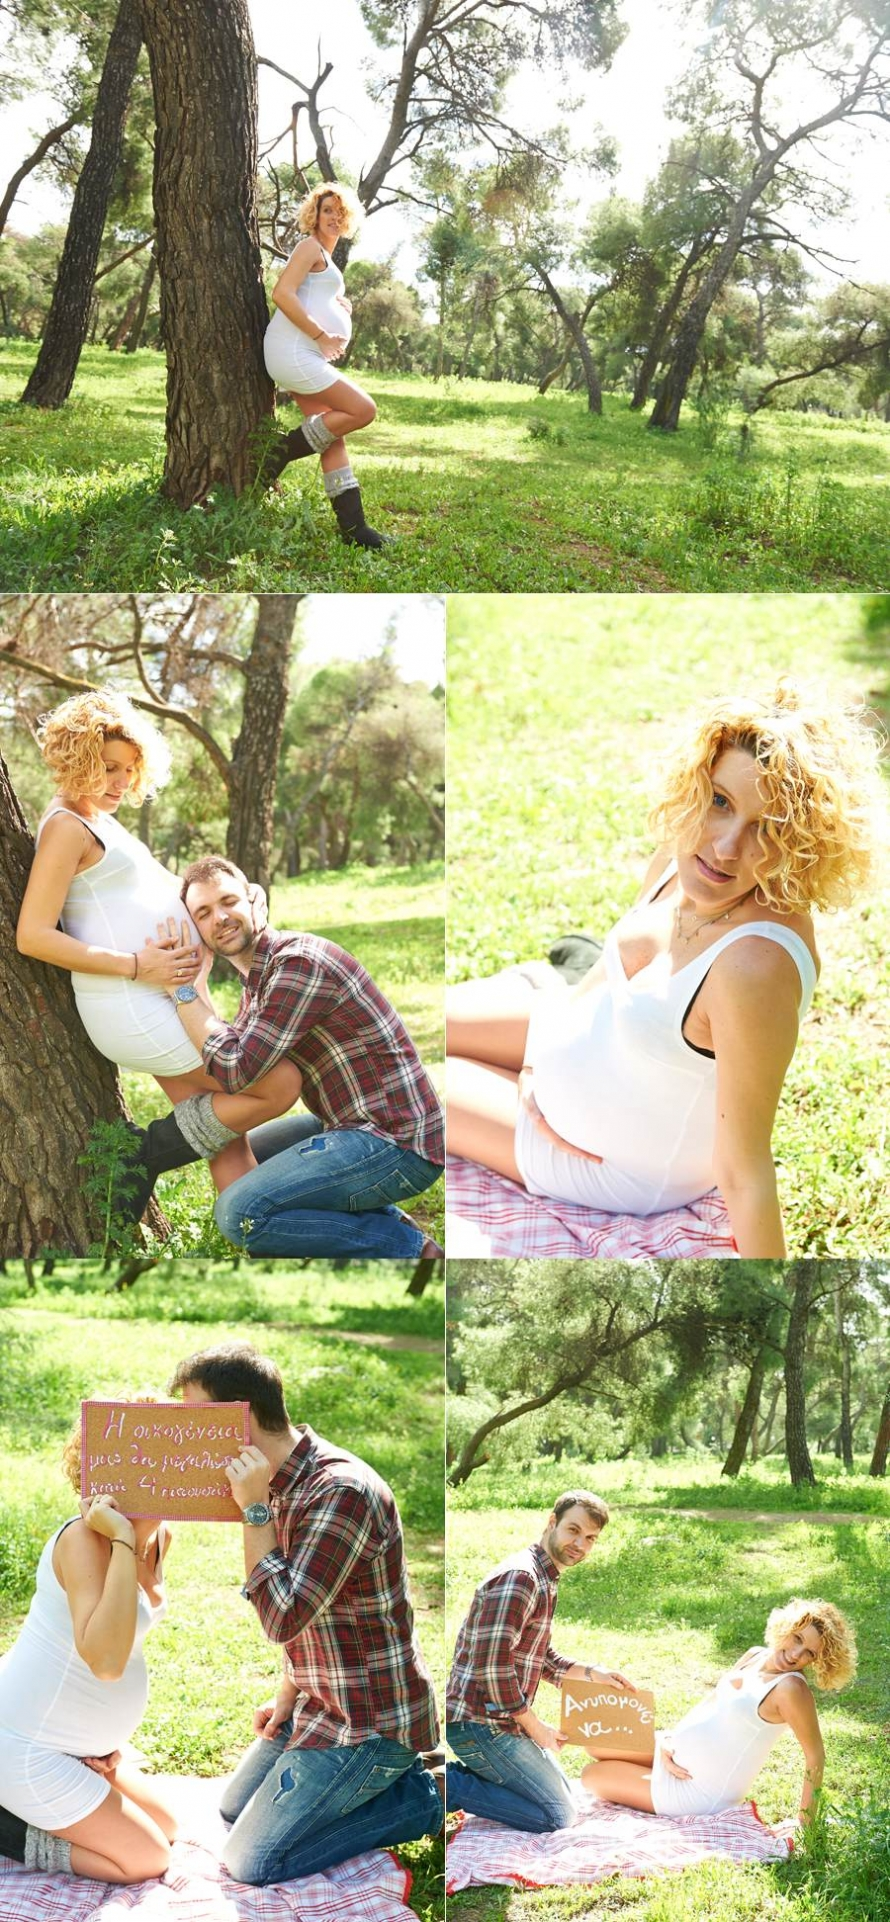 Ilias Maria maternity photos 02